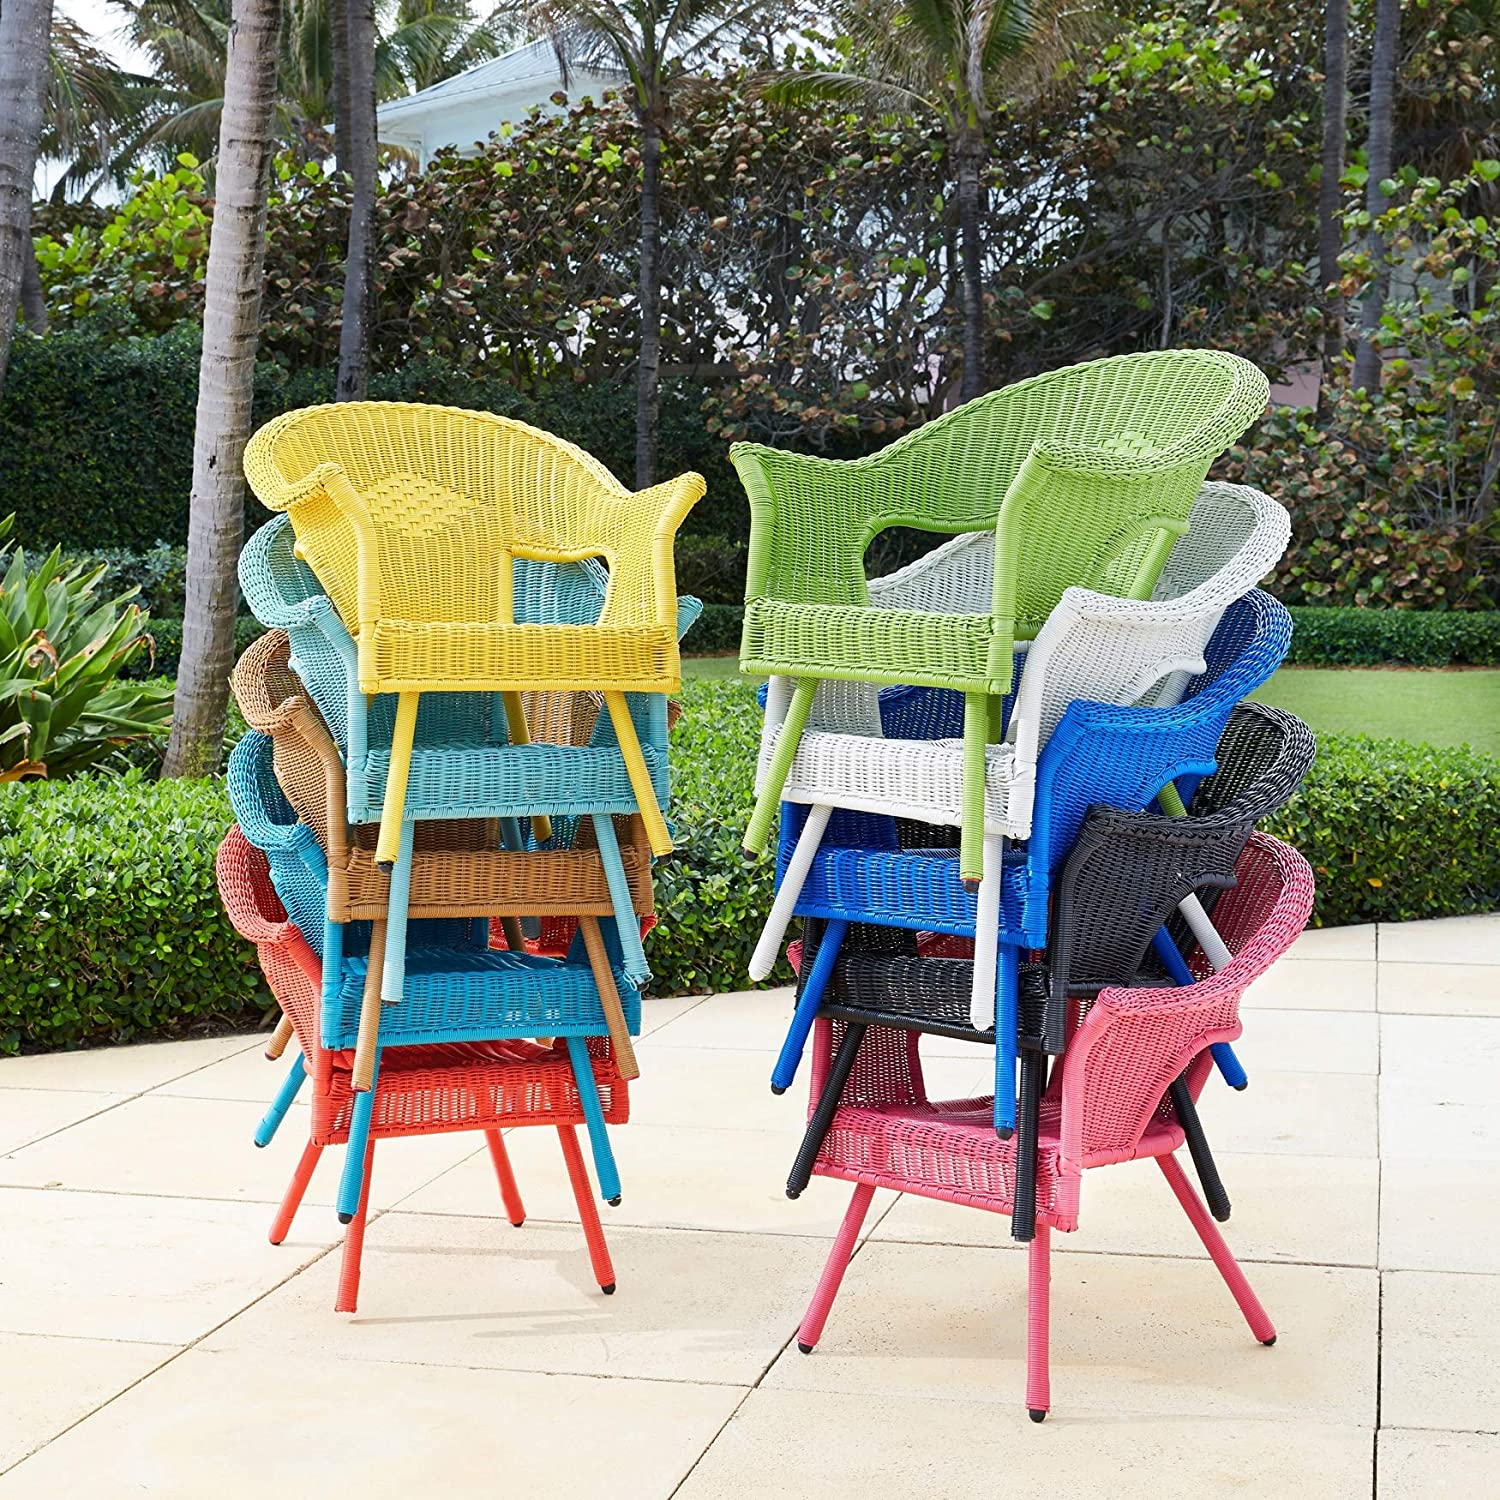 BrylaneHome Roma All-Weather Max 69% OFF Wicker Stacking Seat Chair sale Free +